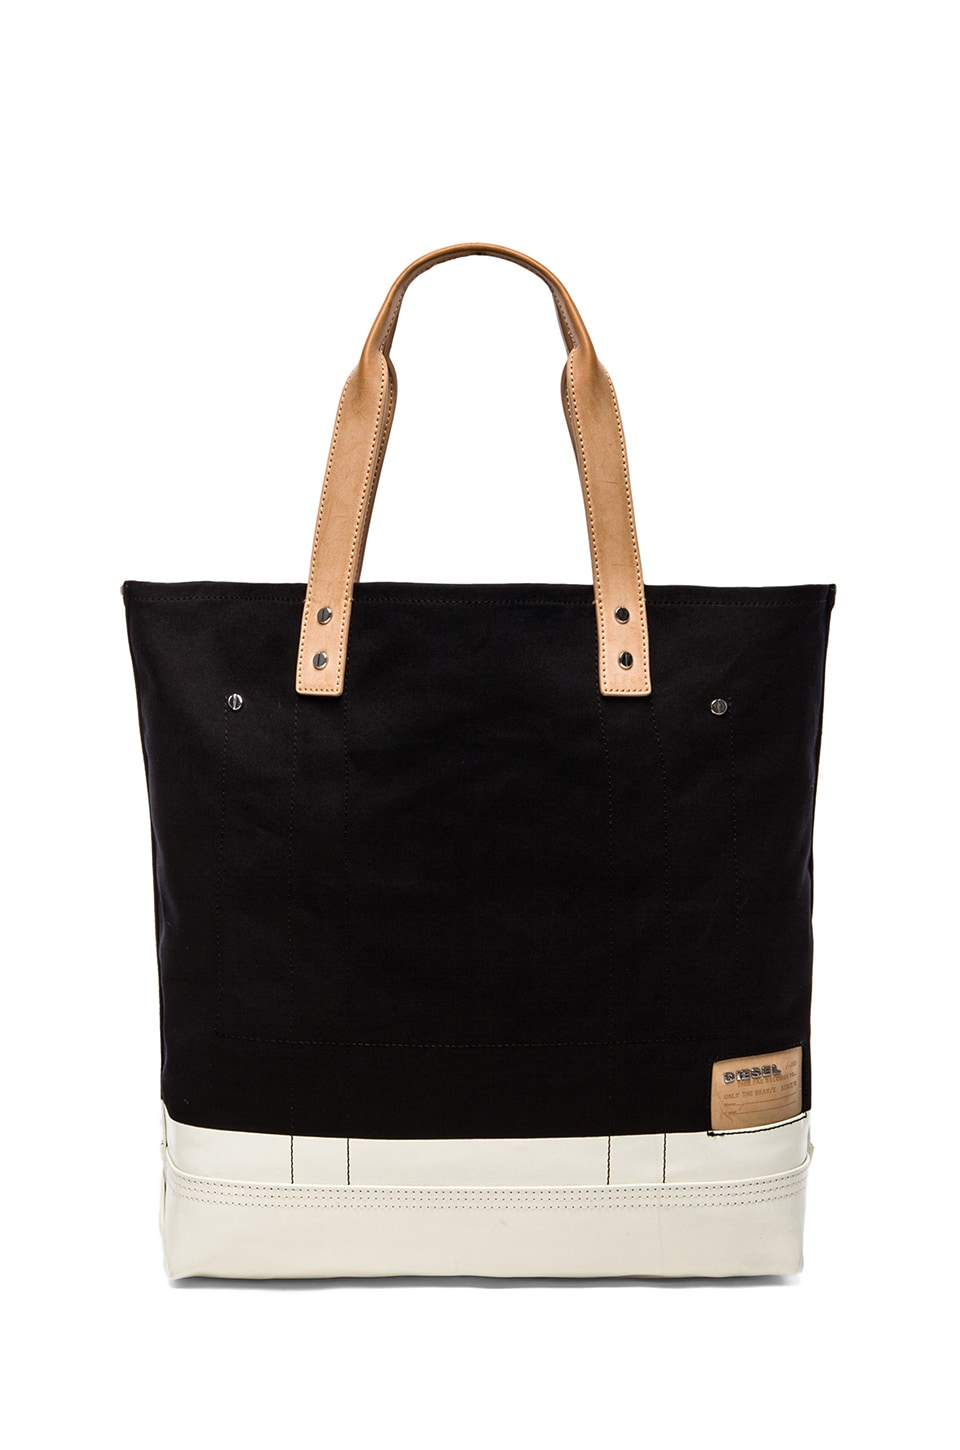 Diesel Stripe & Sand Playgo Tote in Black & Bright White